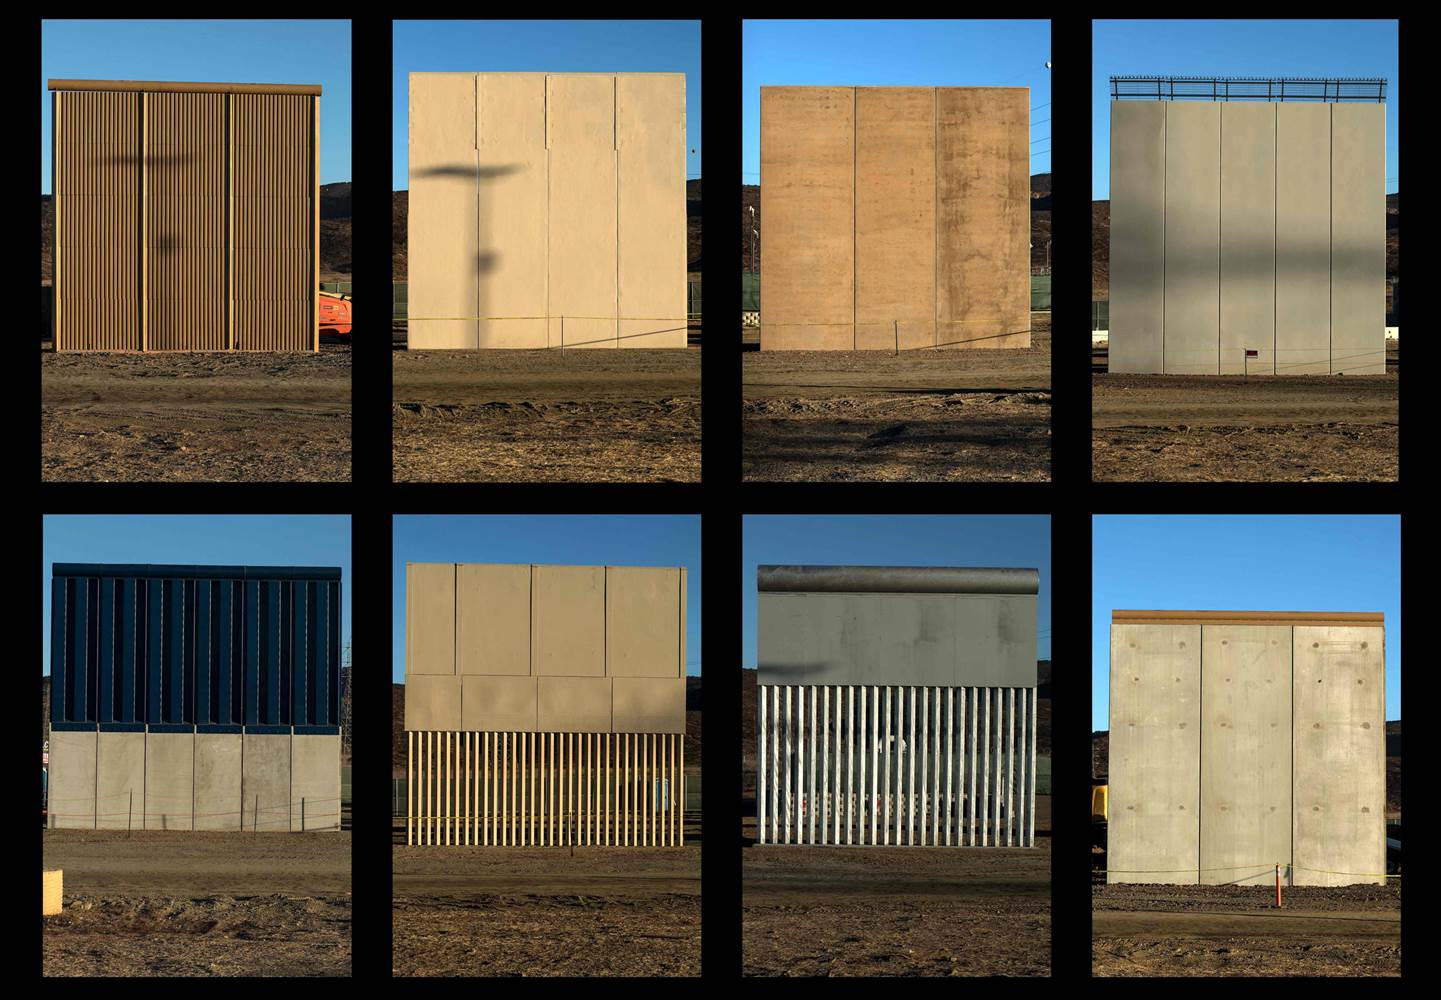 This combination of pictures shows the eight prototypes of President Donald Trump's U.S.-Mexico border wall near San Diego seen from across the border from Tijuana, Mexico. Photo by Guillermo Arias.